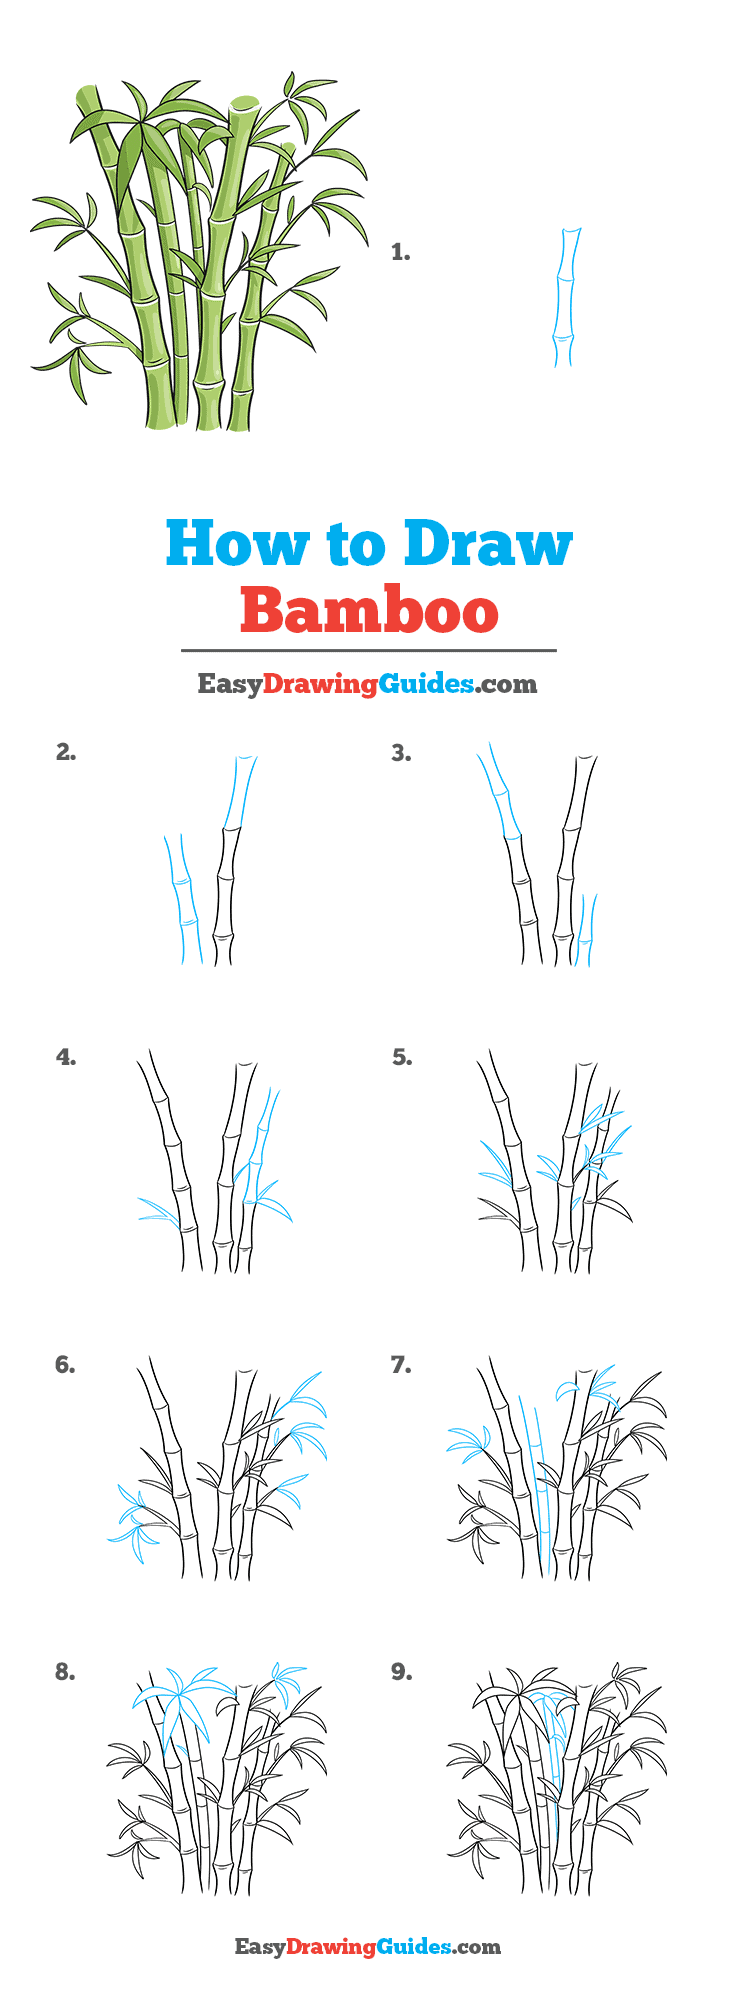 How to Draw Bamboo Step by Step Tutorial Image